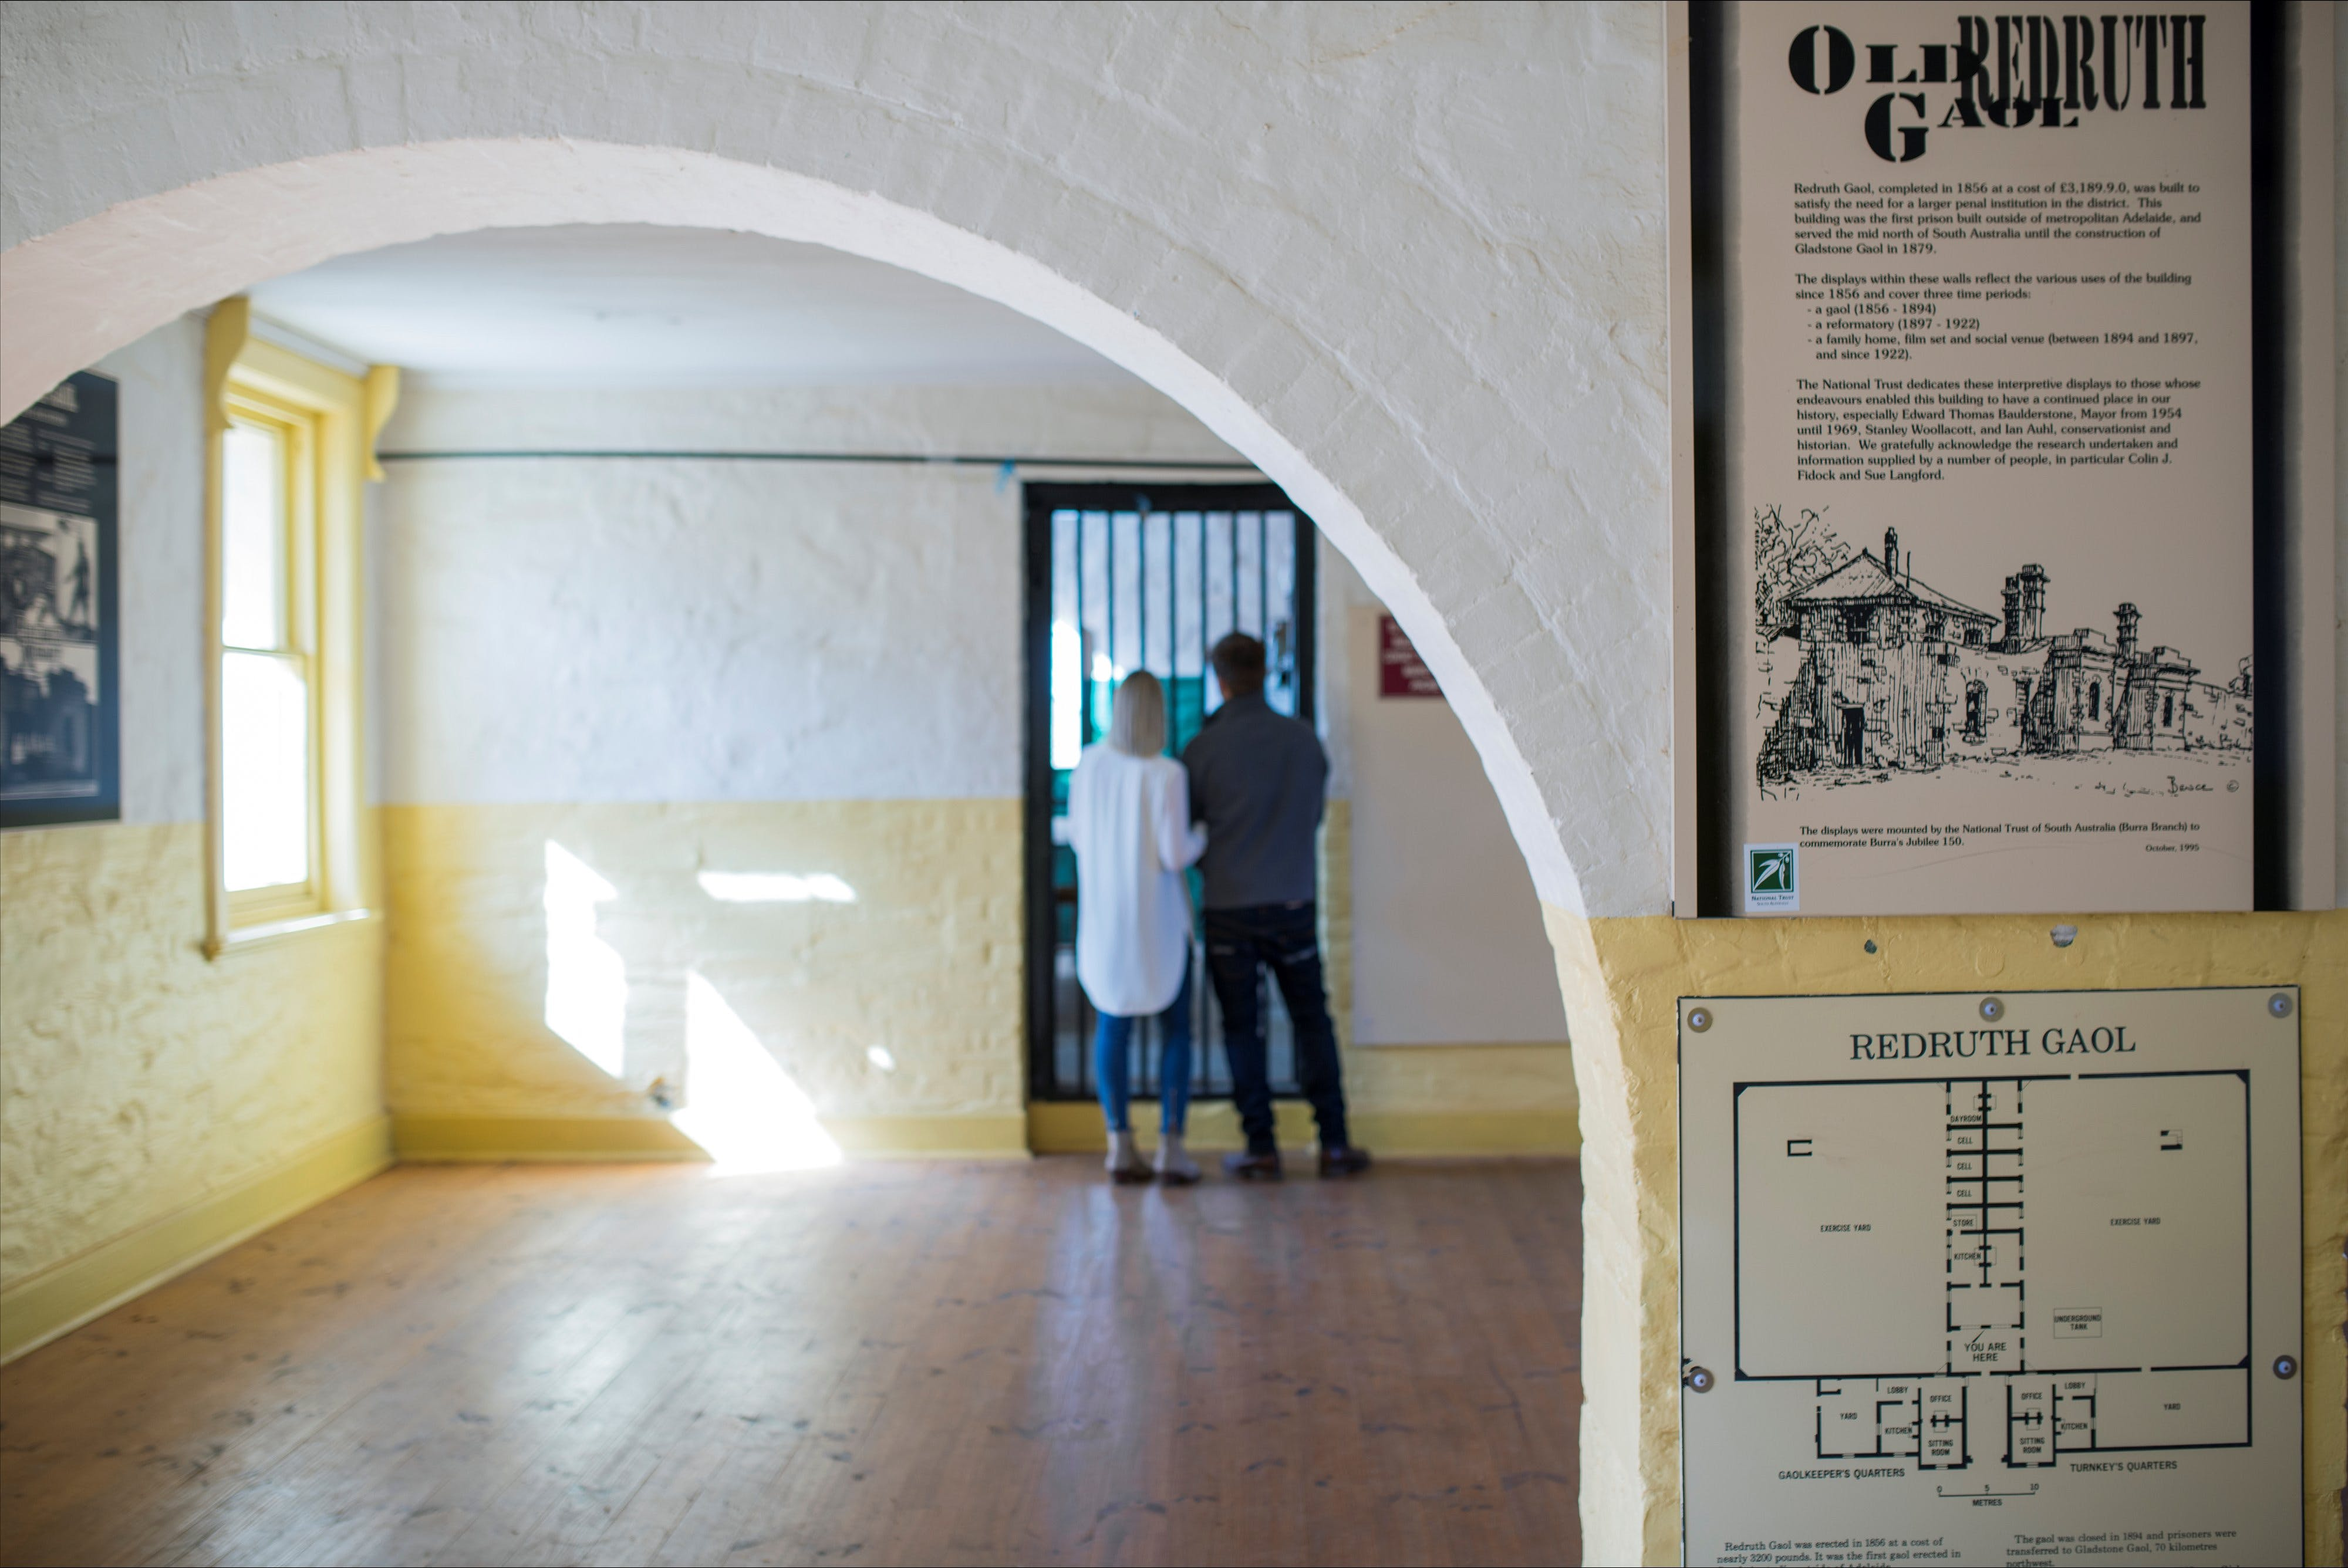 Redruth Gaol - Attractions